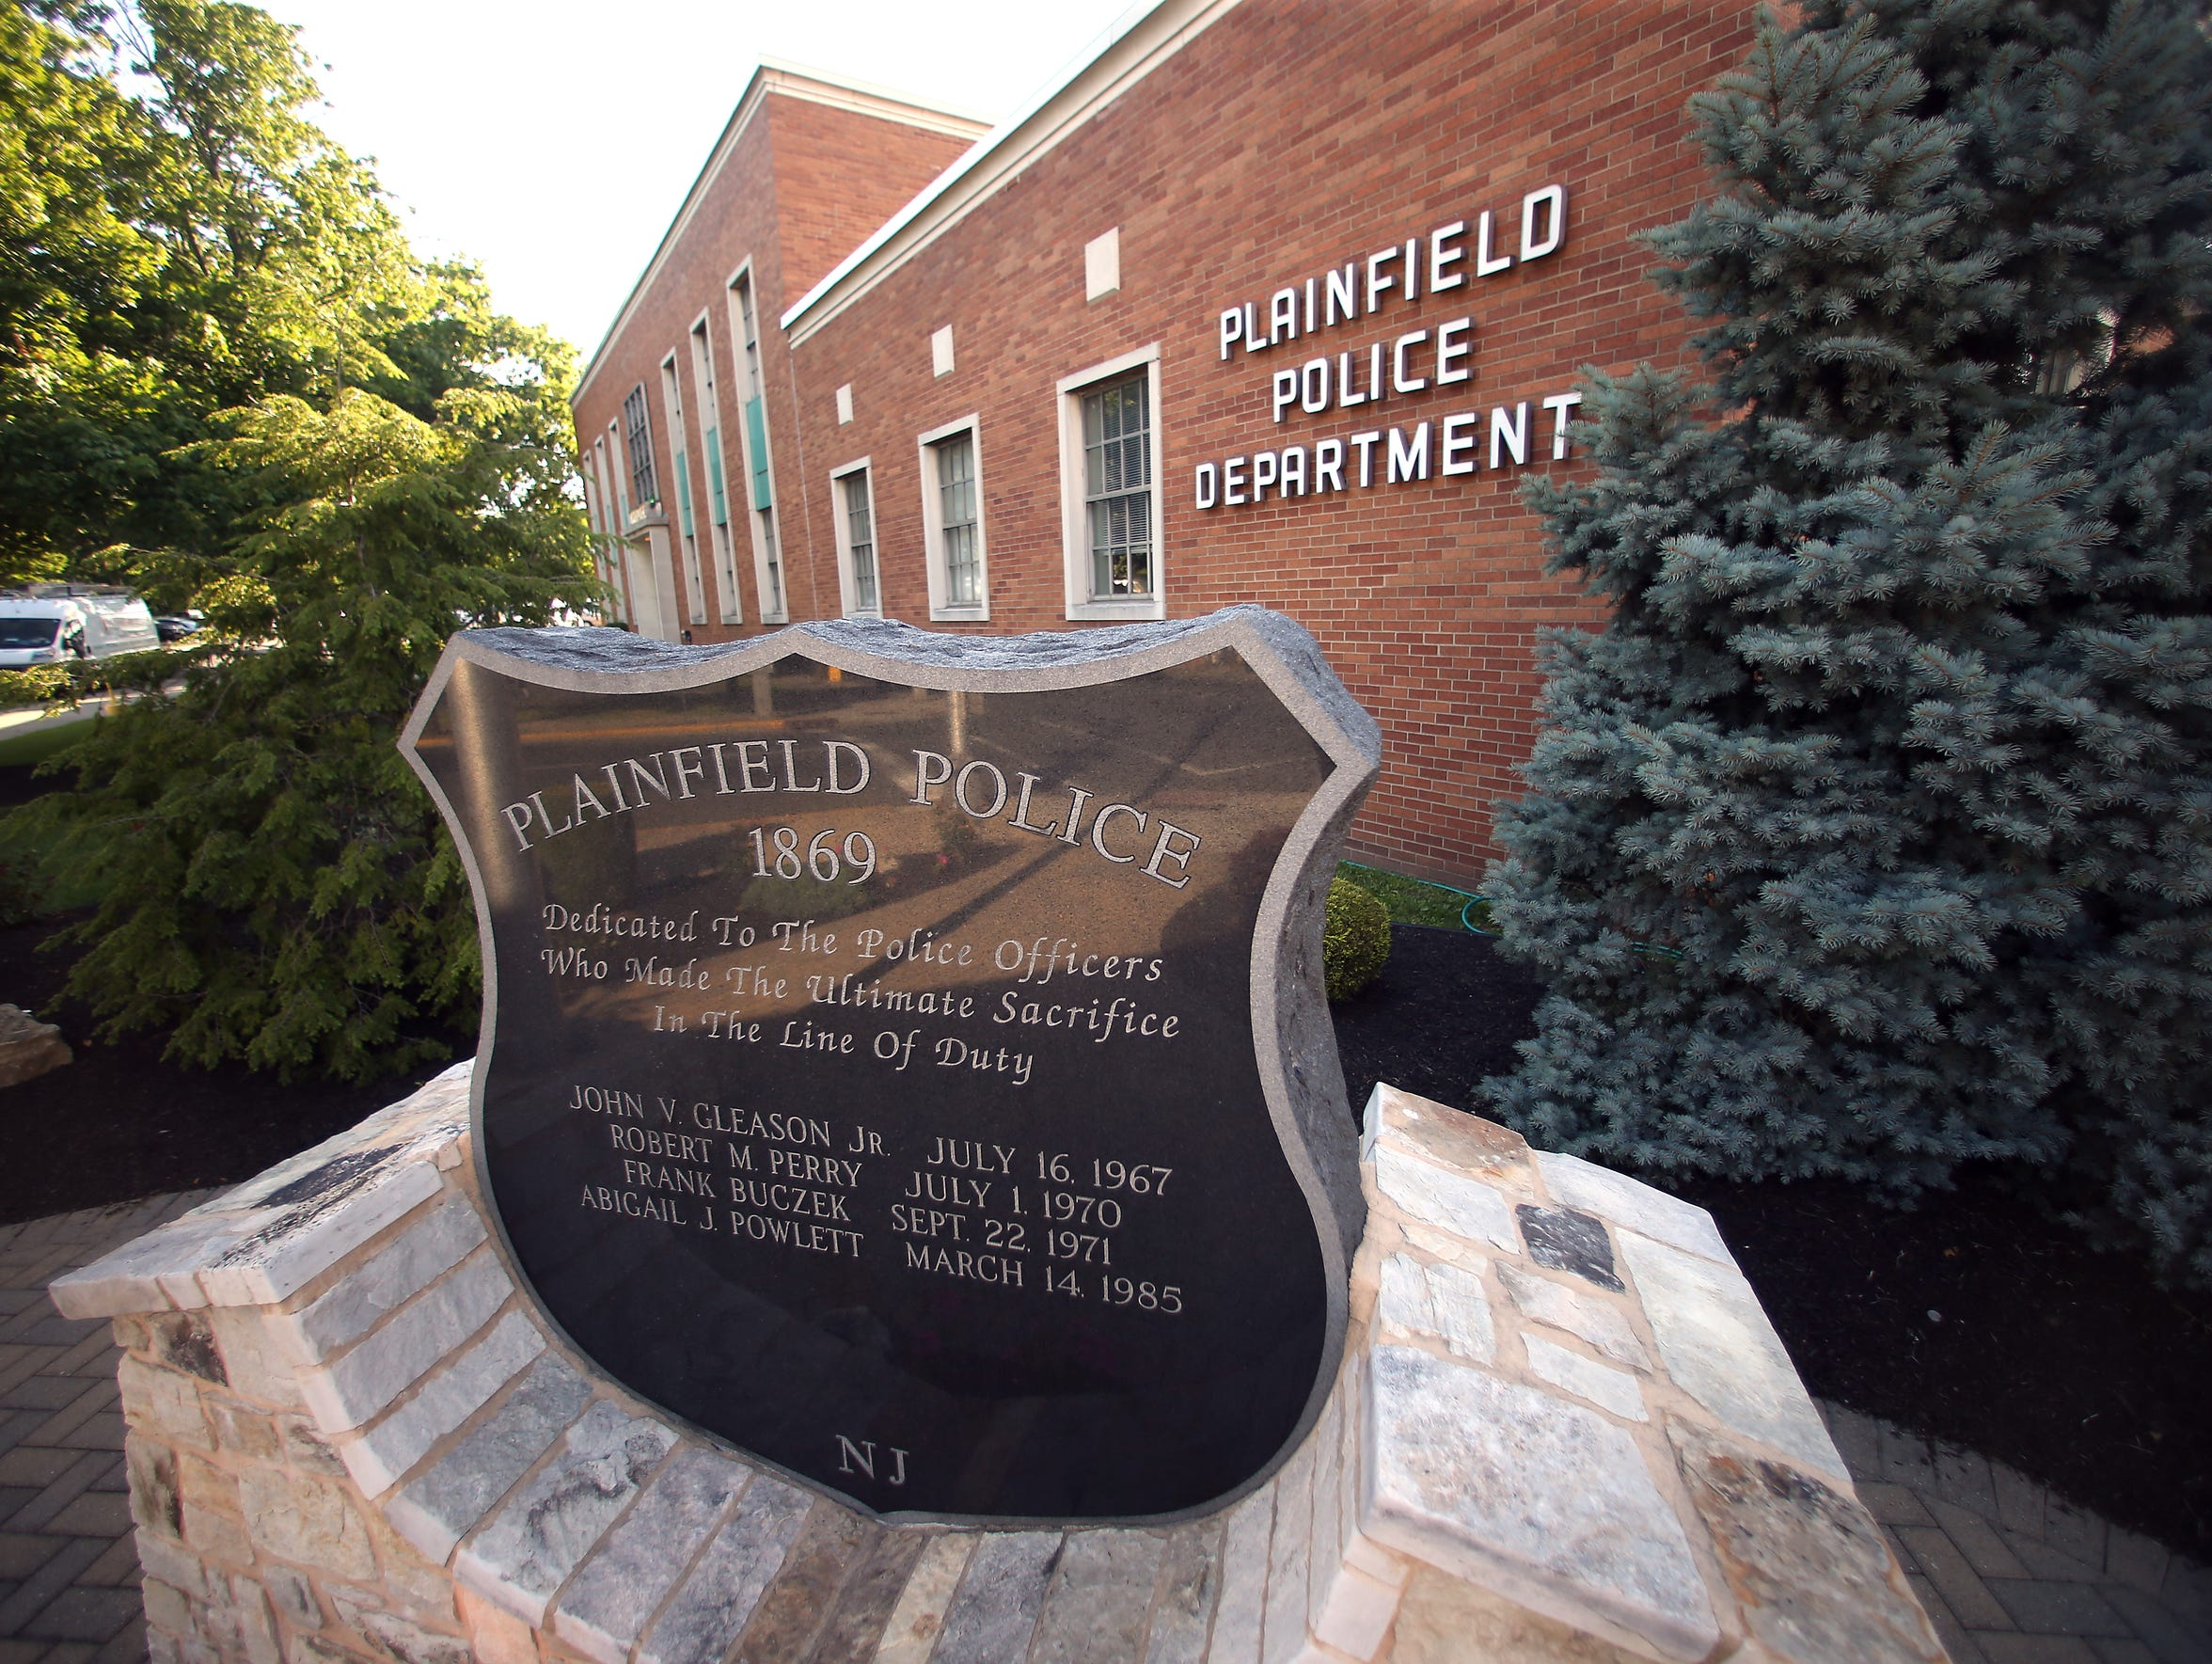 The Plainfield Police Department memorial to fallen